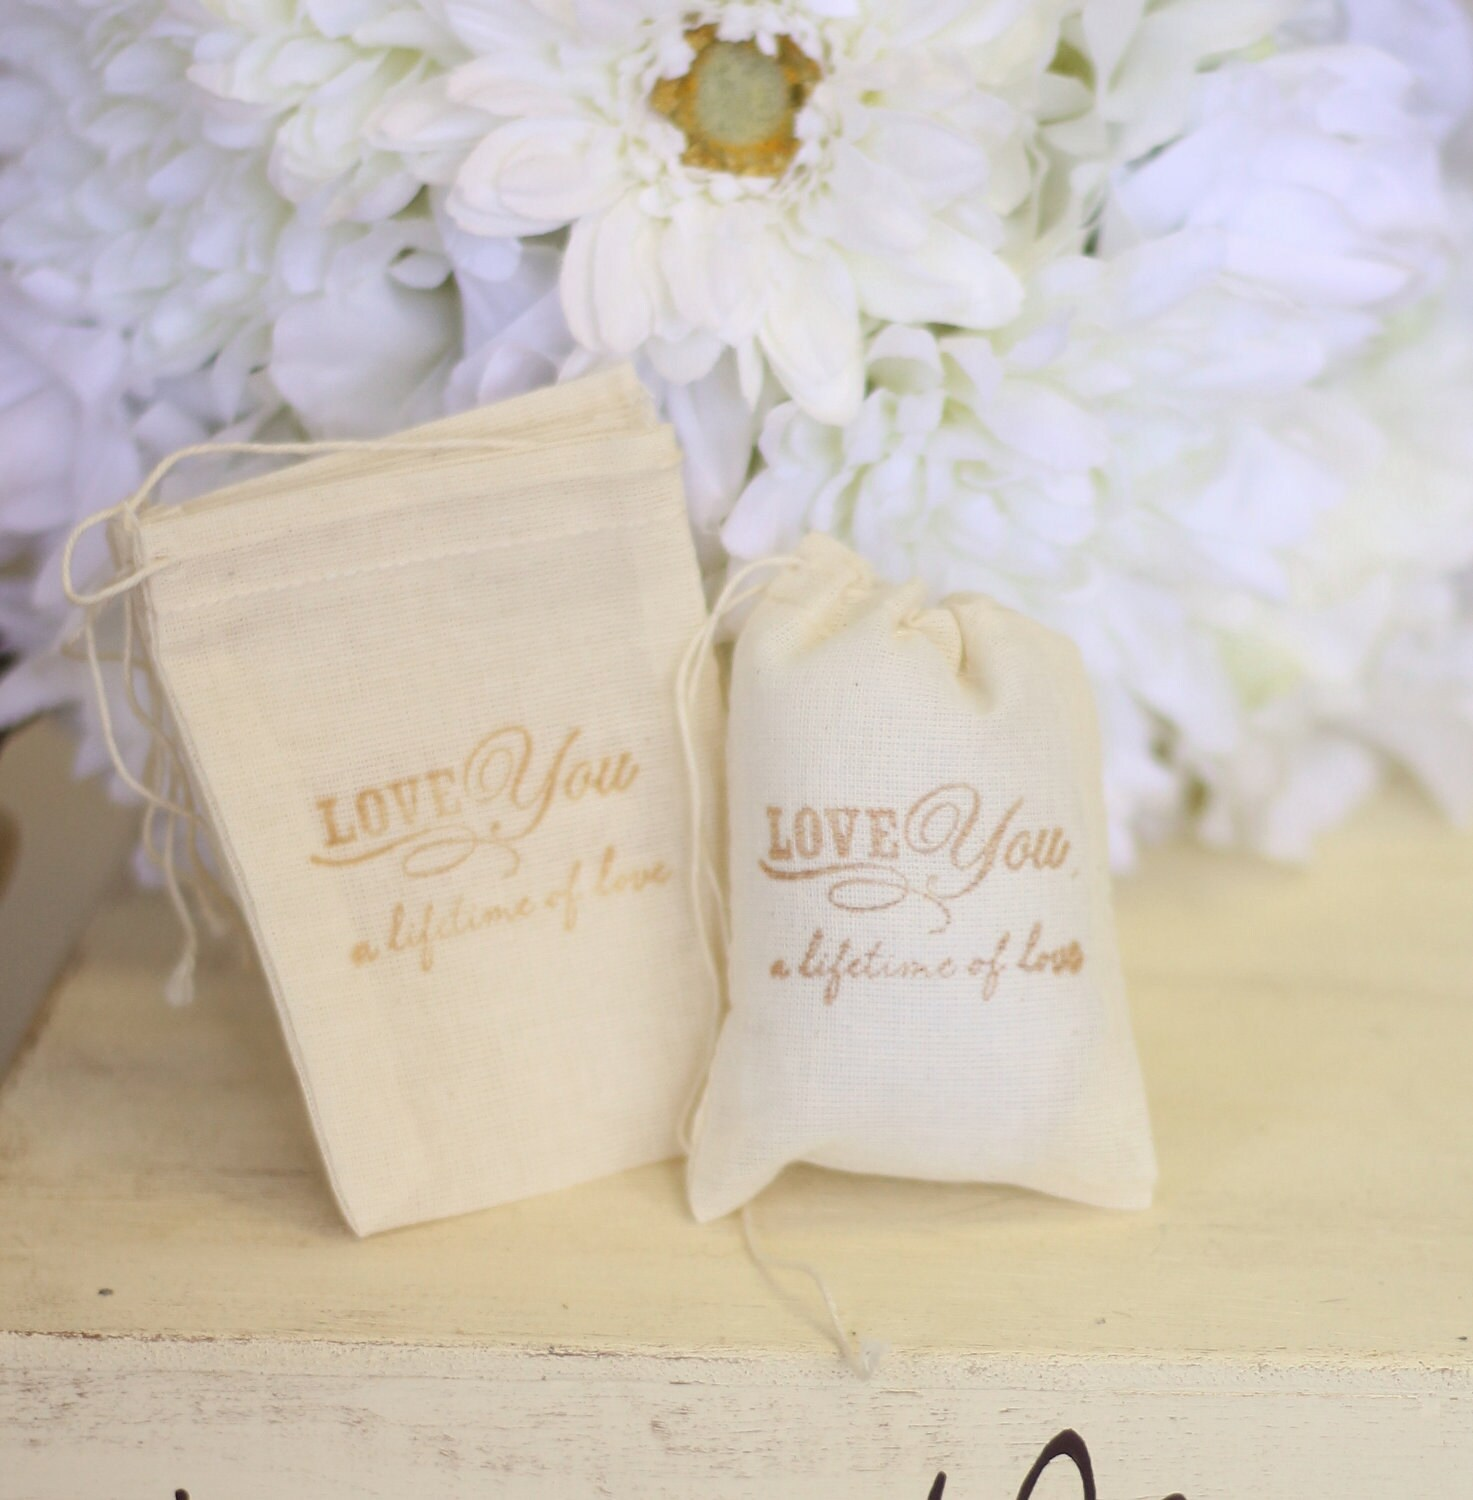 Quotes For Wedding Gift Bags : favorite favorited like this item add it to your favorites to revisit ...